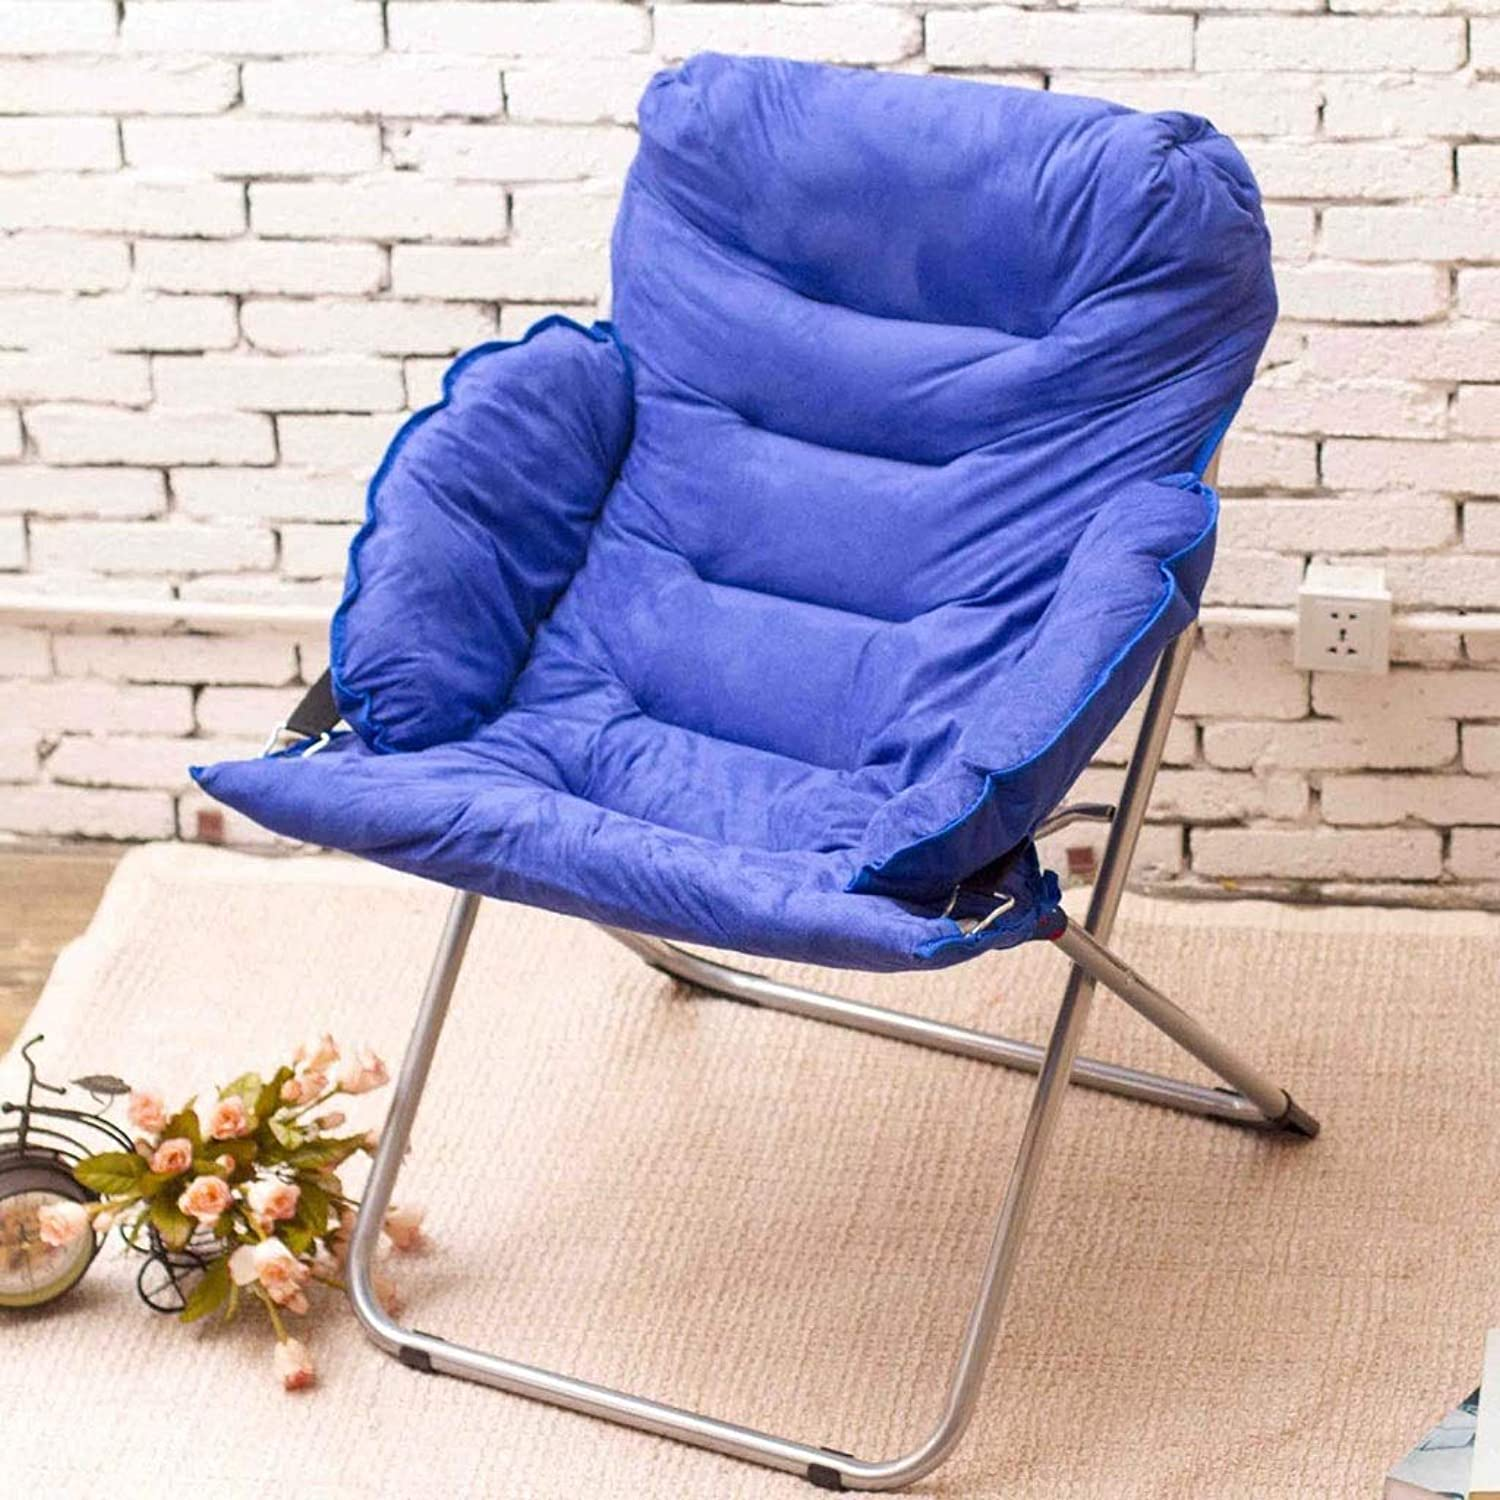 ZDYUY Folding Chair Washable Adult Moon Chair Sun Lounger Lazy Chair Lounge Chair Armchair Home Lounge Chair (color   B)